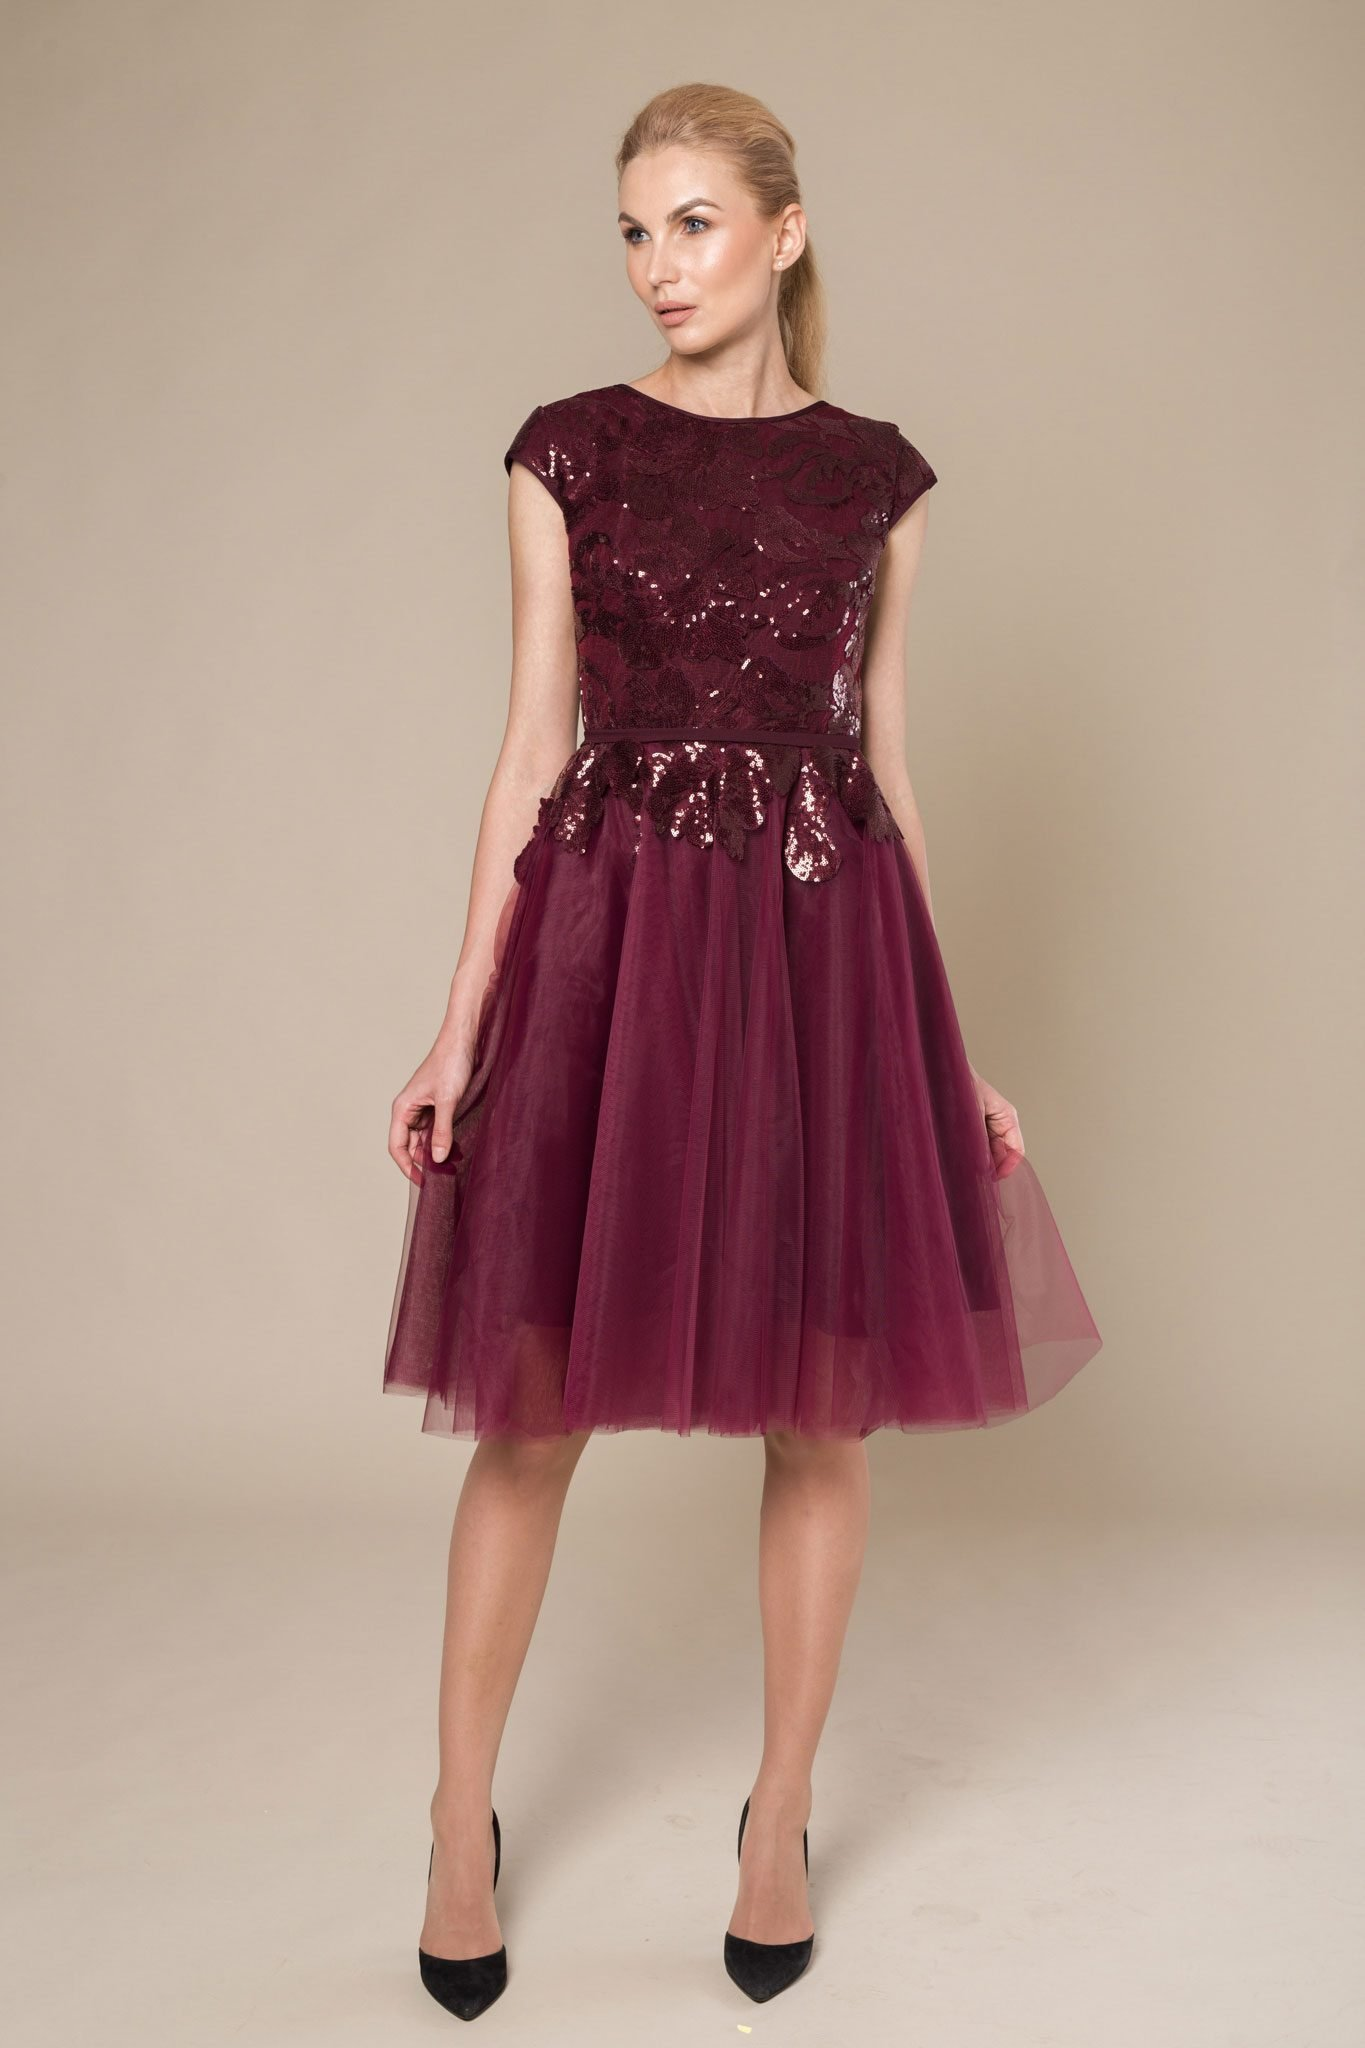 Burgundy midi dress with sequin top